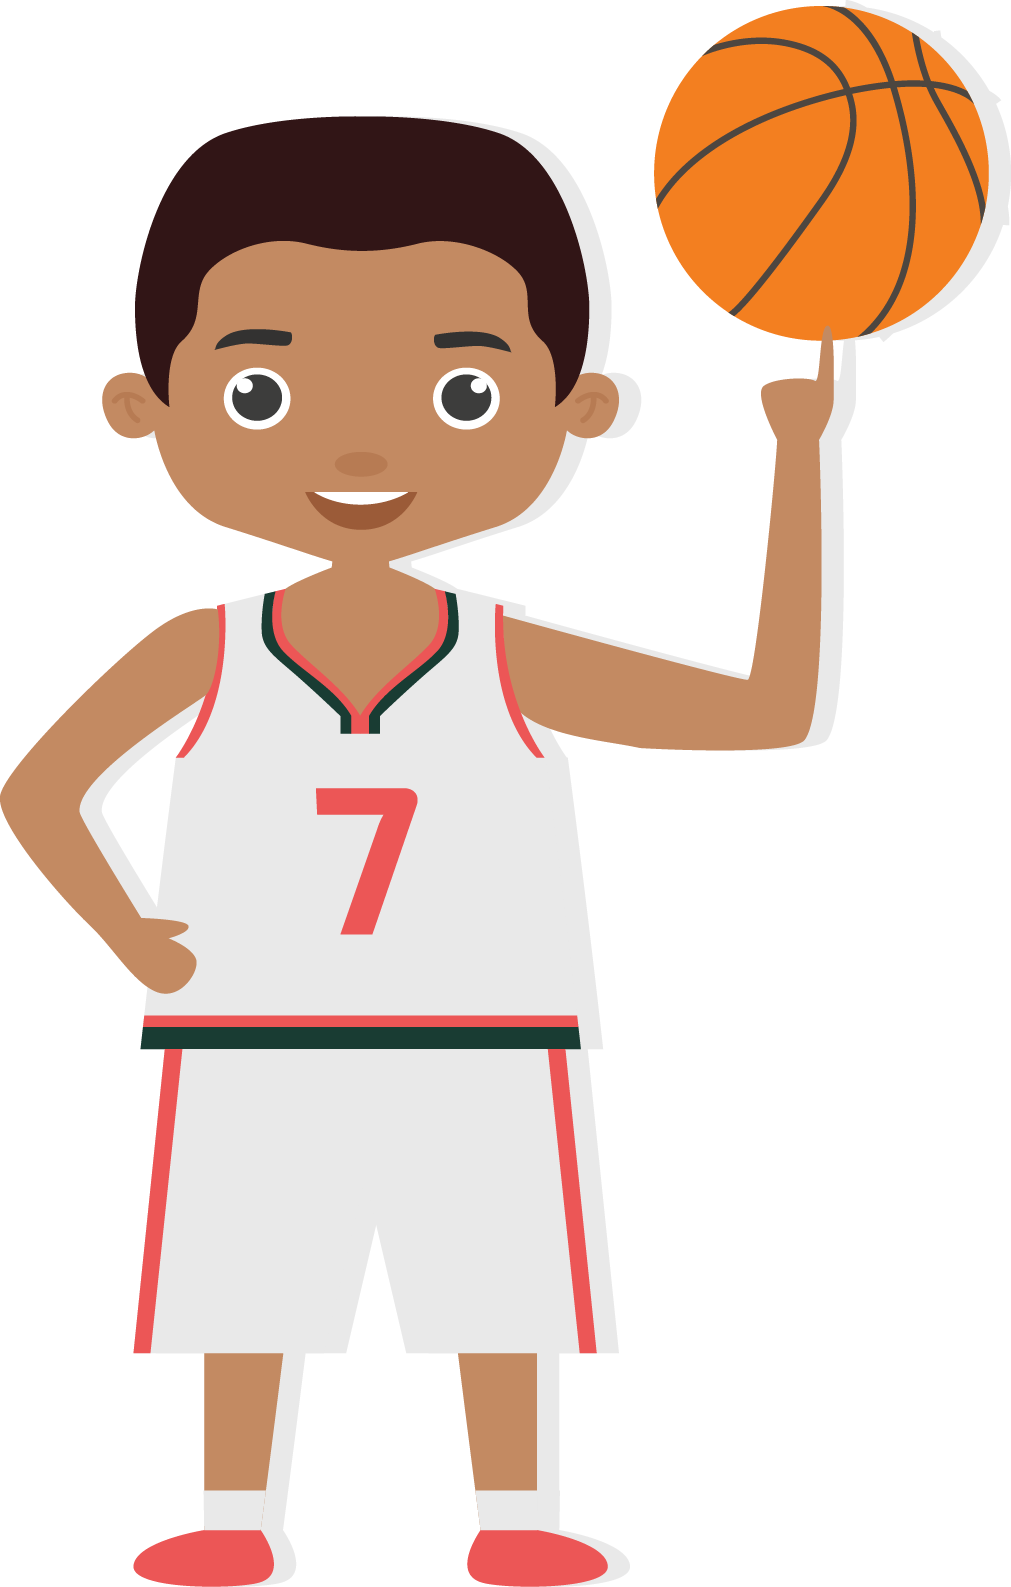 Cartoon women basketball player clipart vector transparent library Bathurst Minor Basketball Association vector transparent library